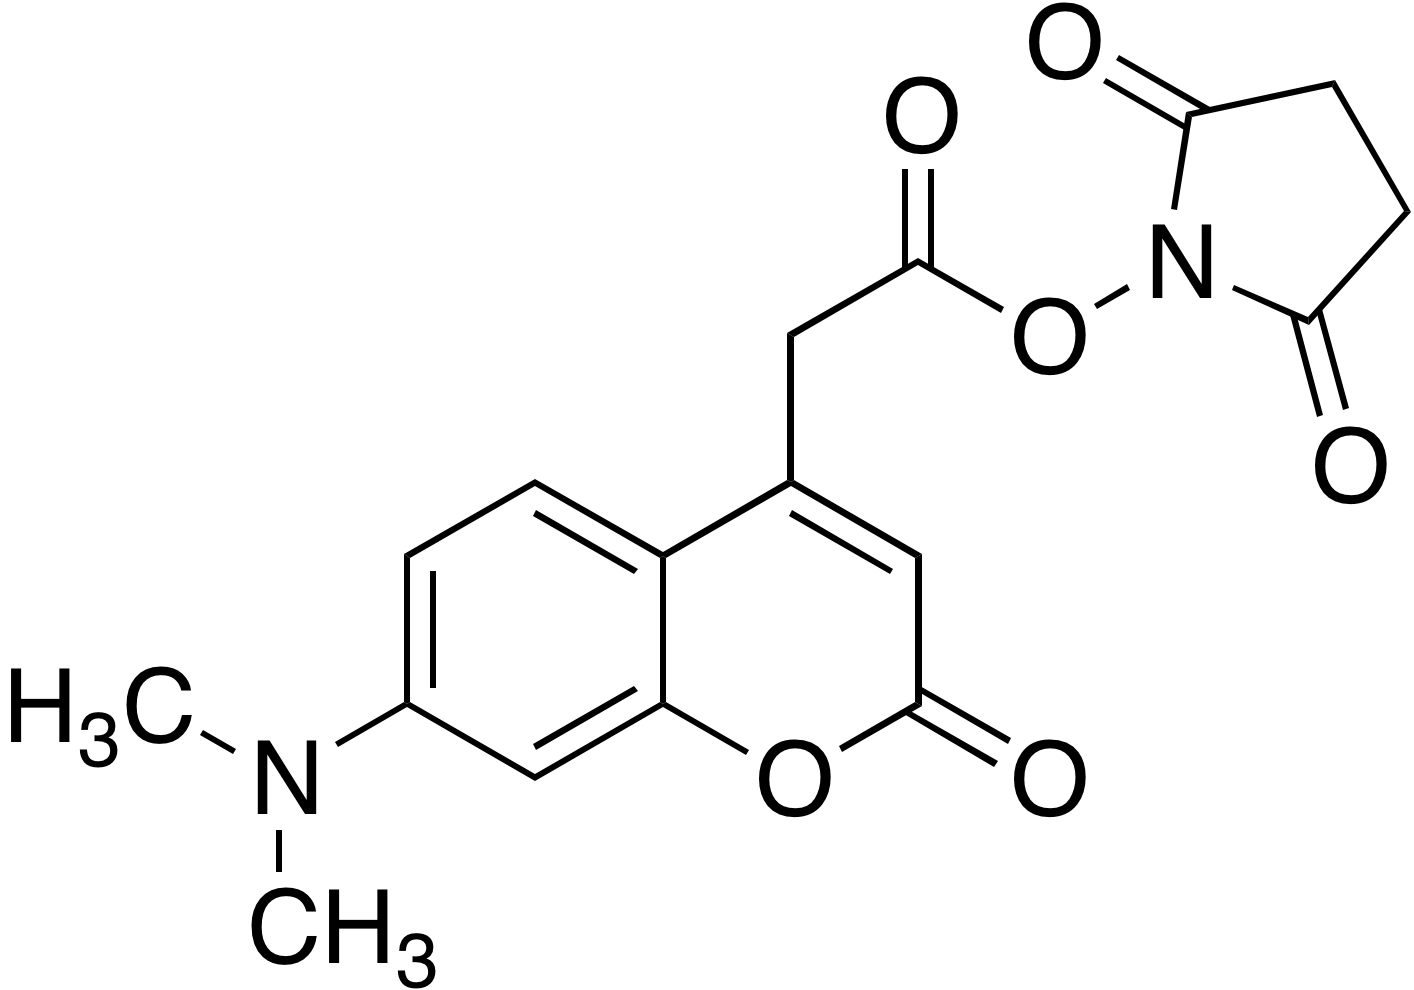 7-Dimethylaminocoumarin-4-acetic acid, succinimidyl ester